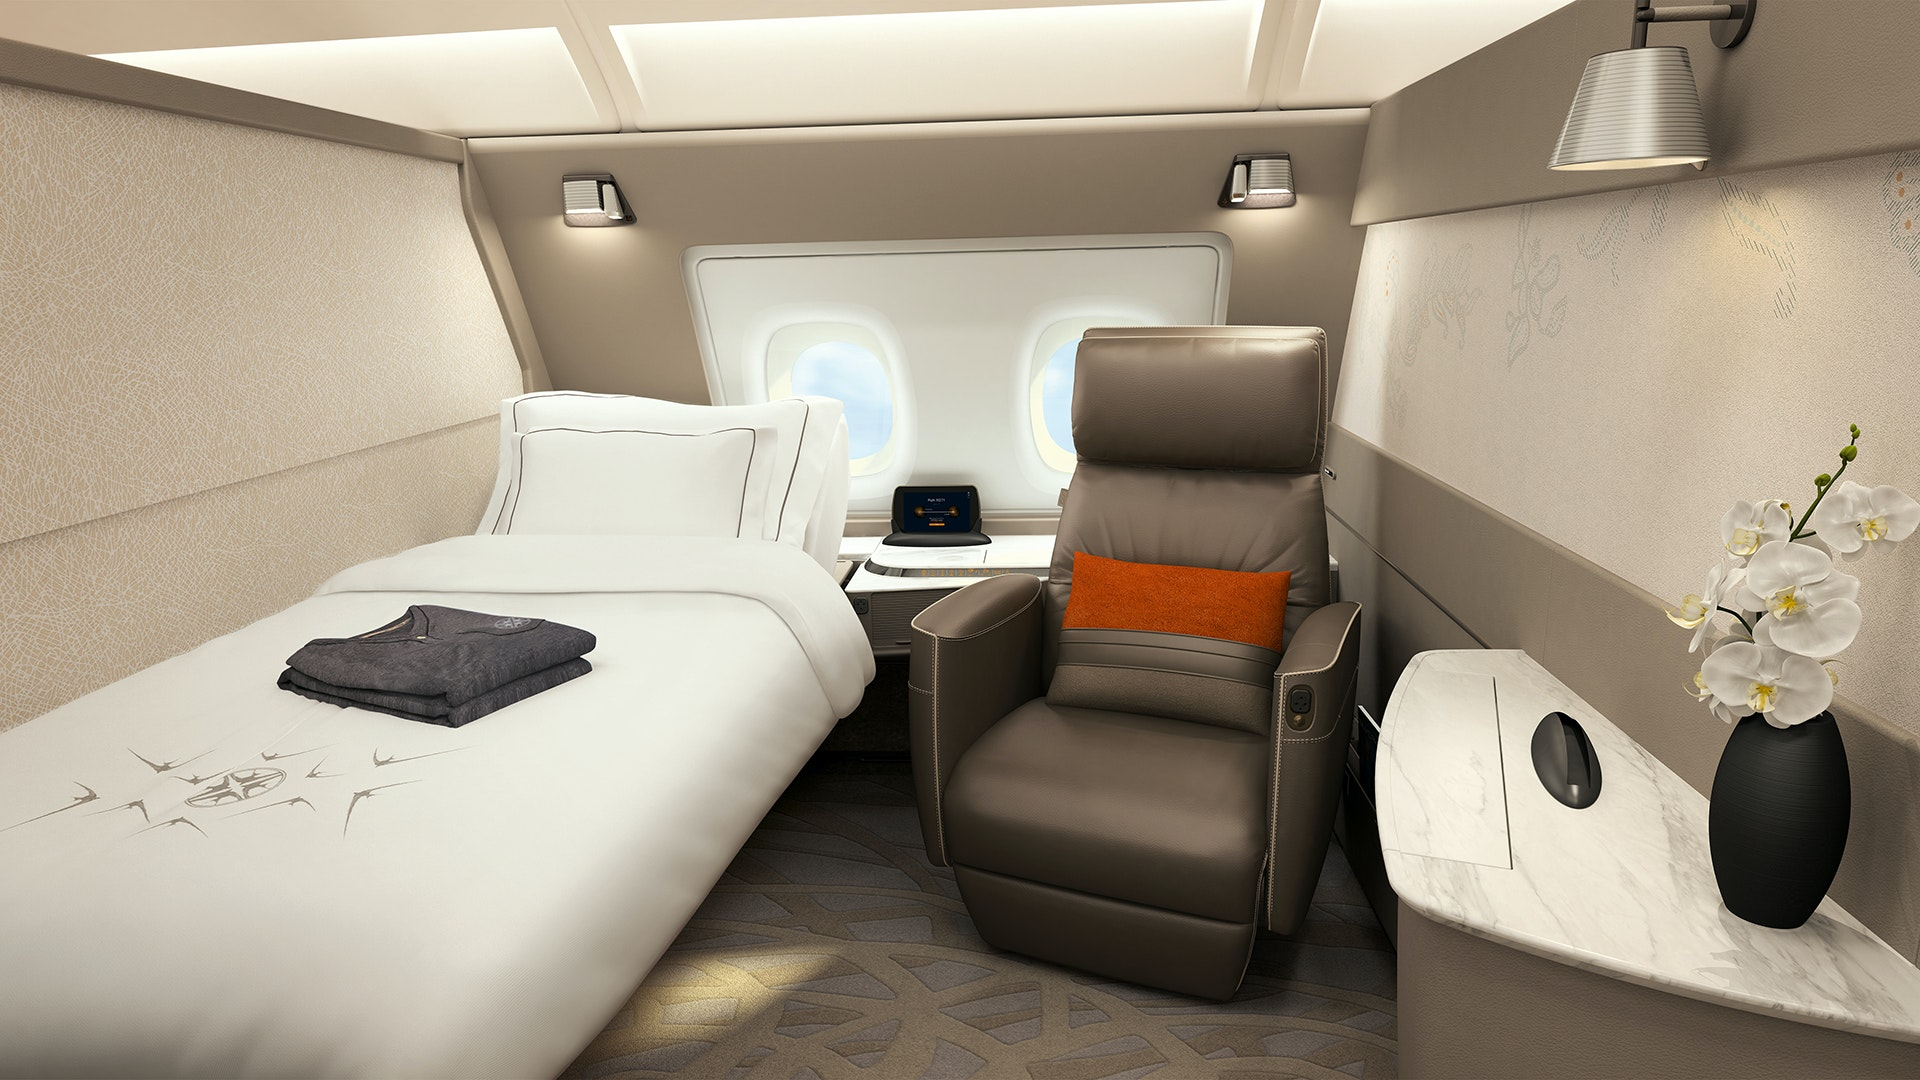 In standard configuration, the A380 Suite features a twin-size bed and a comfy armchair.